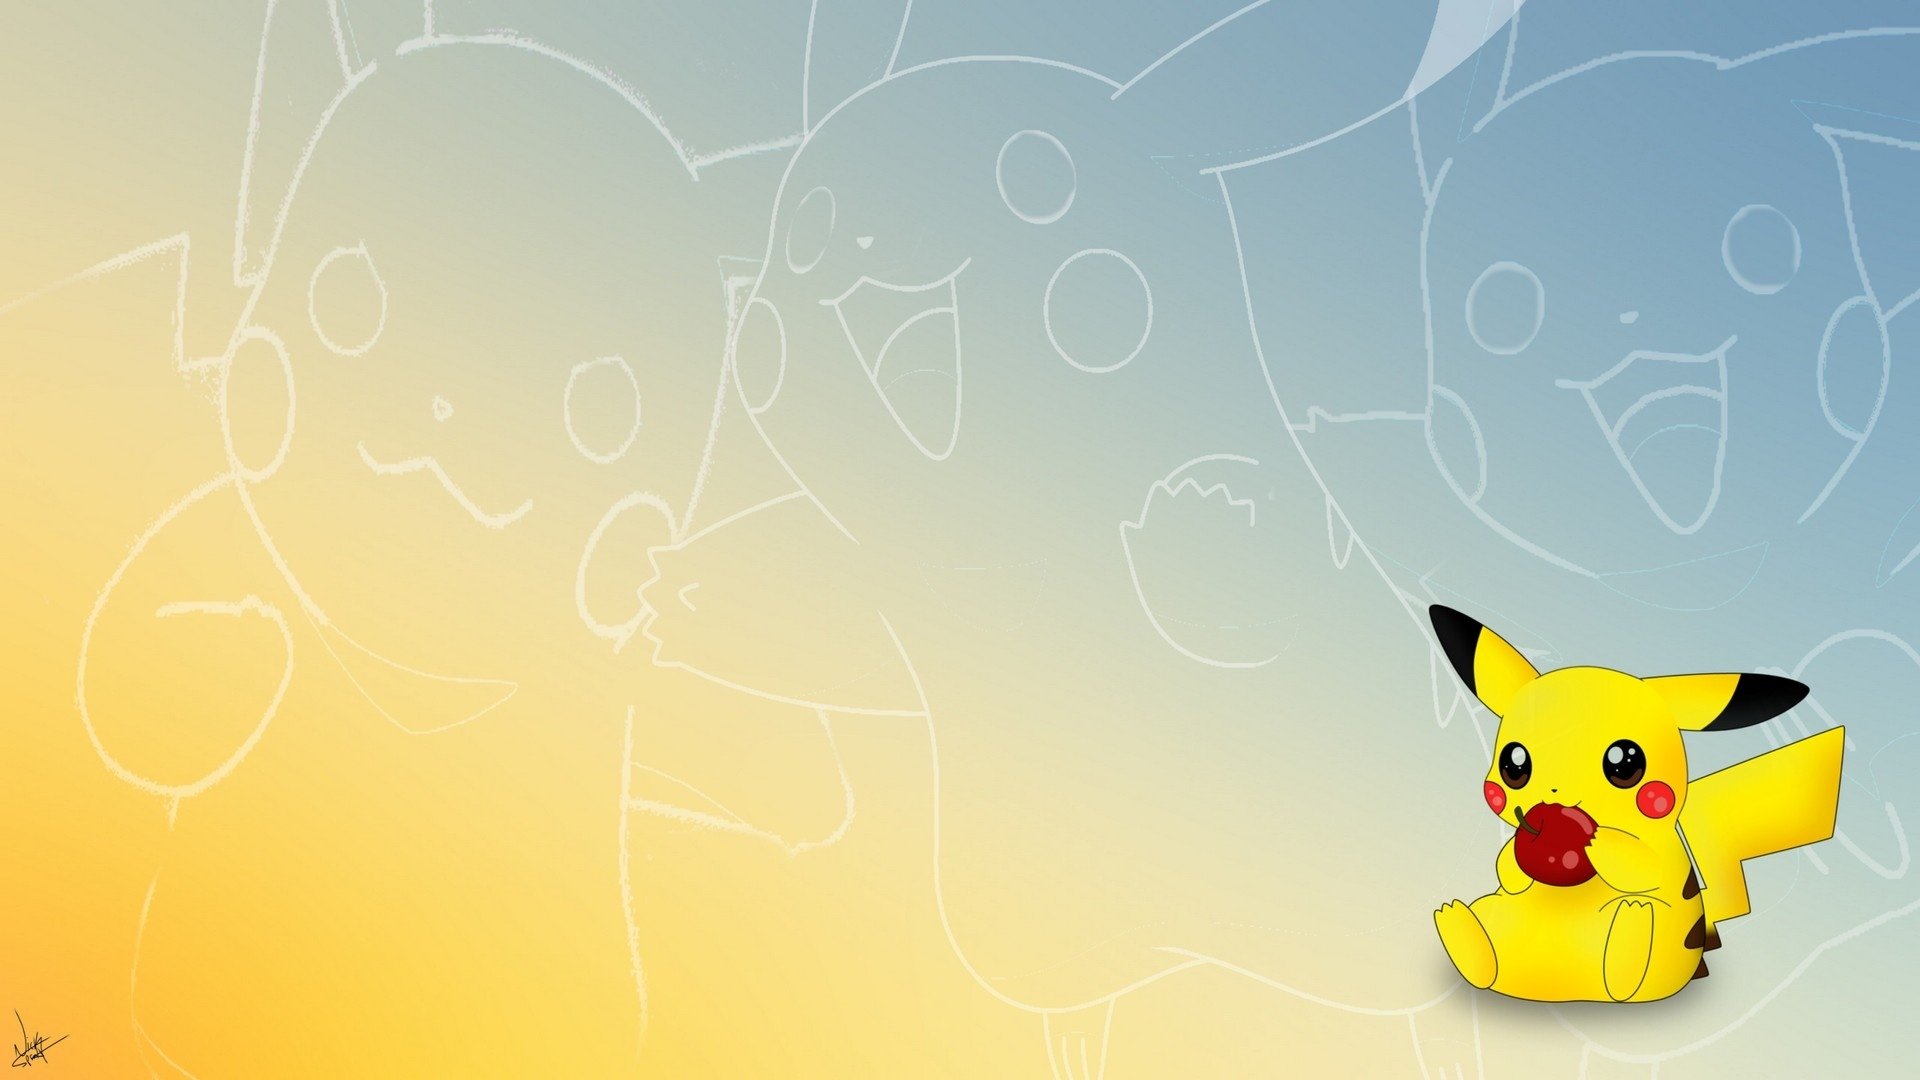 Pikachu 1080p wallpaper